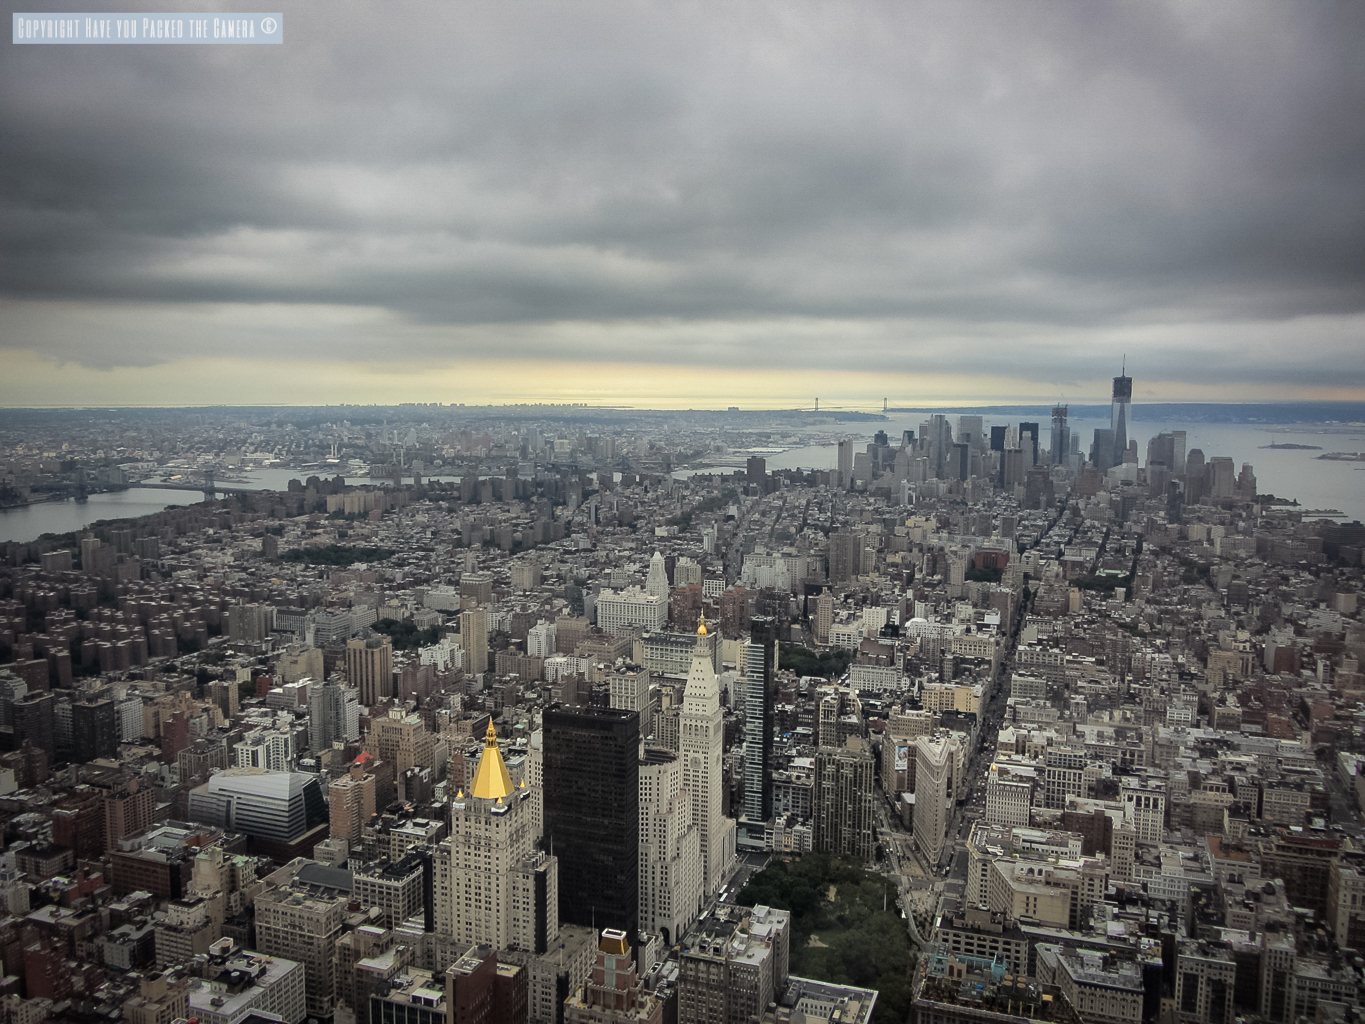 Empire state building view from 102 floor for 102nd floor